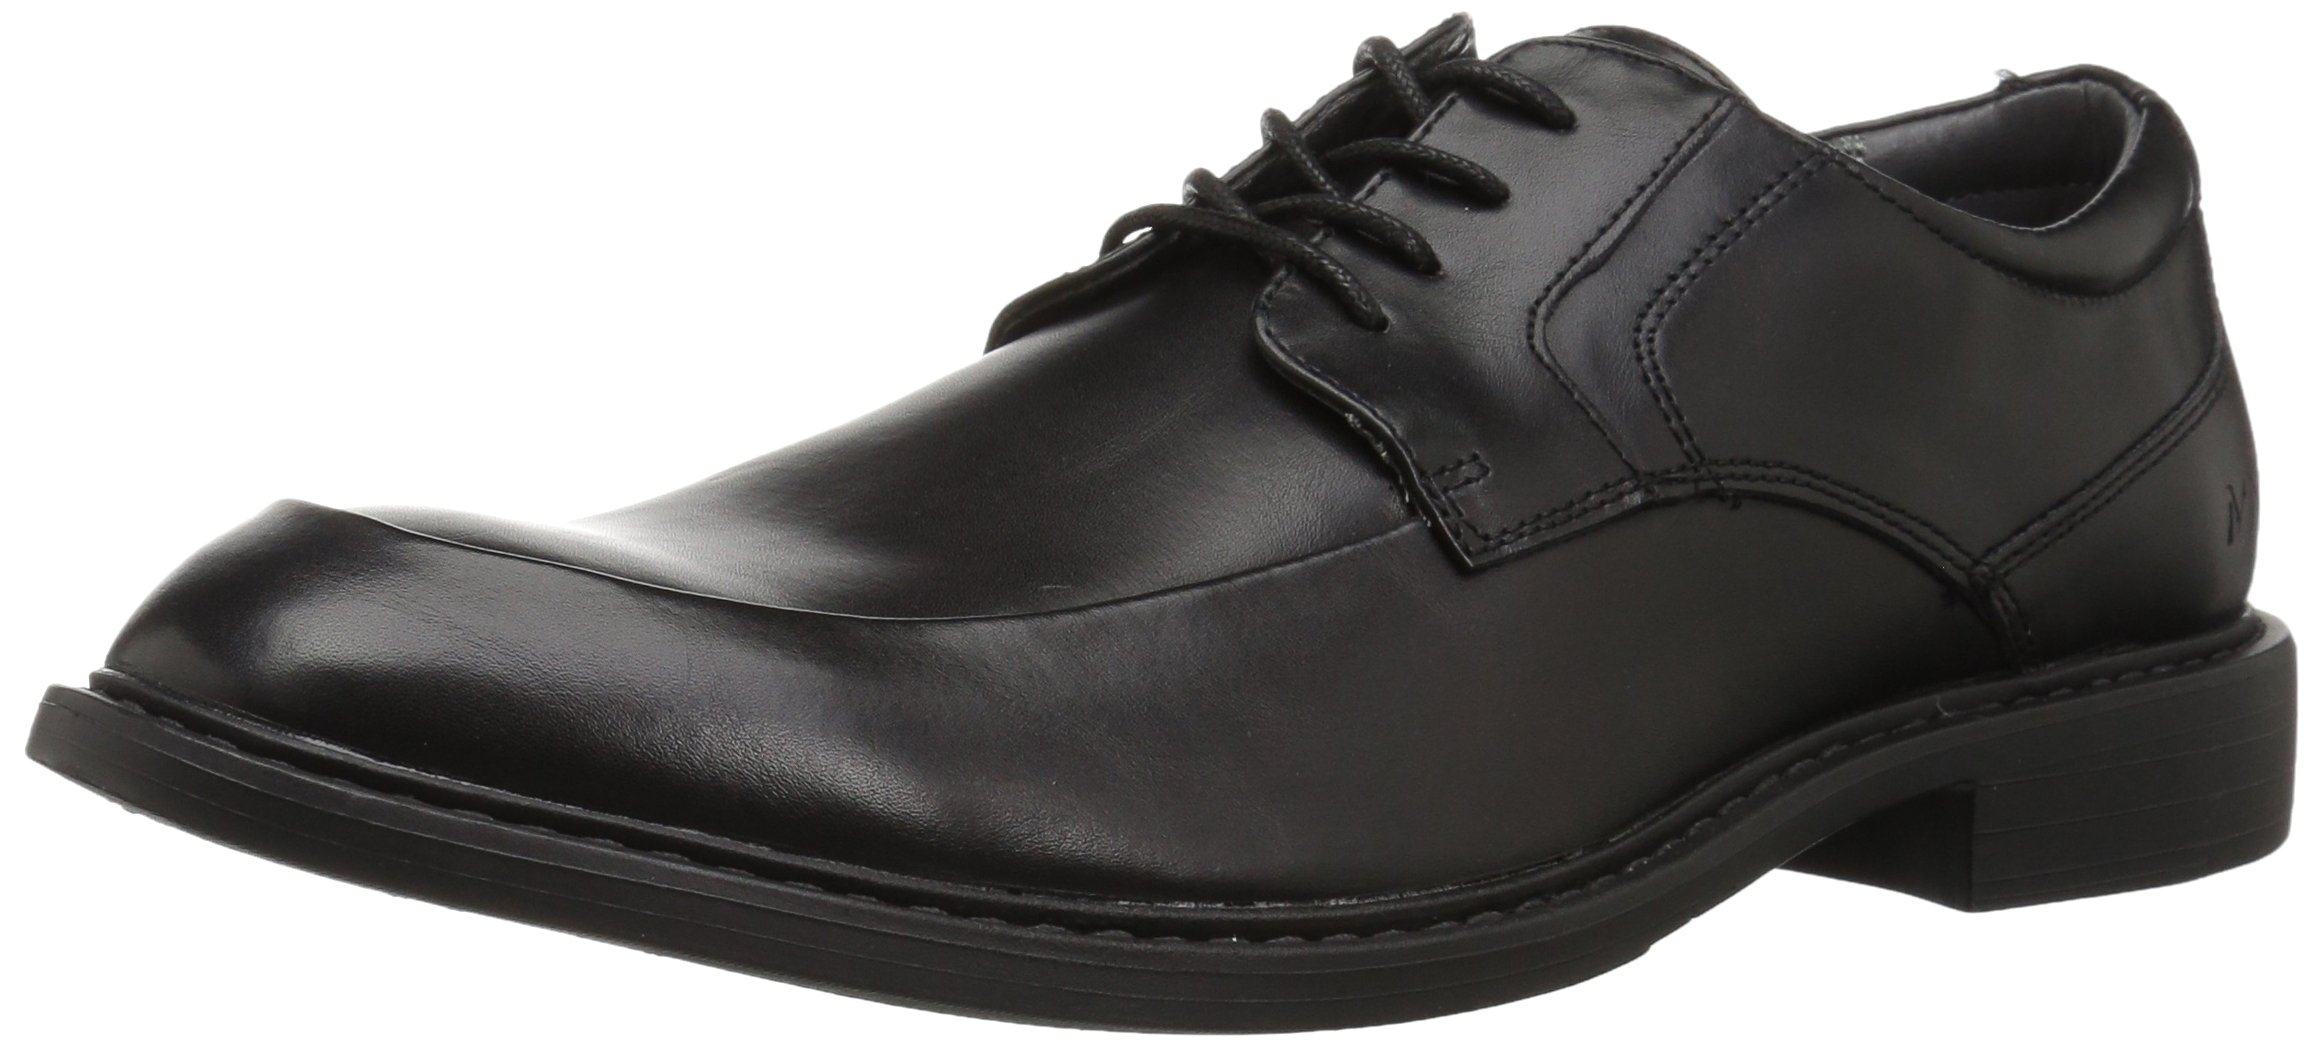 Marc New York Men's Lewis Oxford, Black, 9.5 M US by Marc New York by Andrew Marc